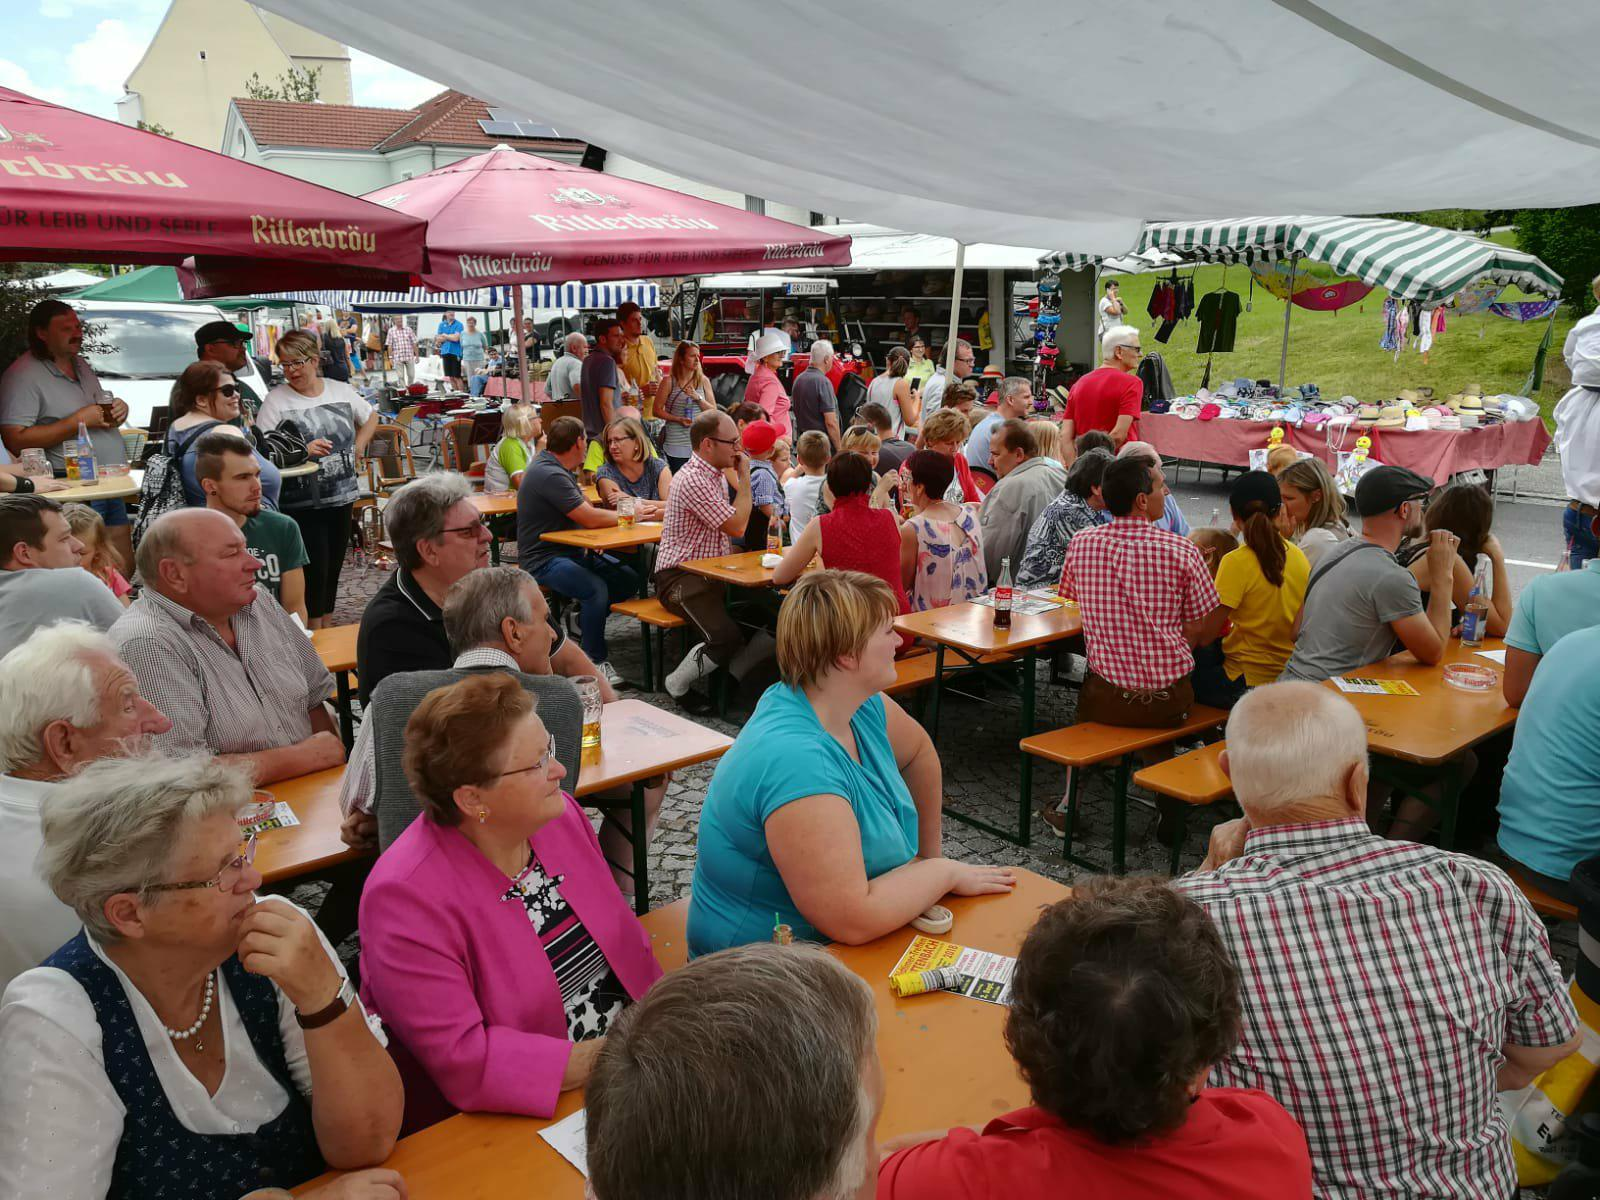 Kirtag in Pötting